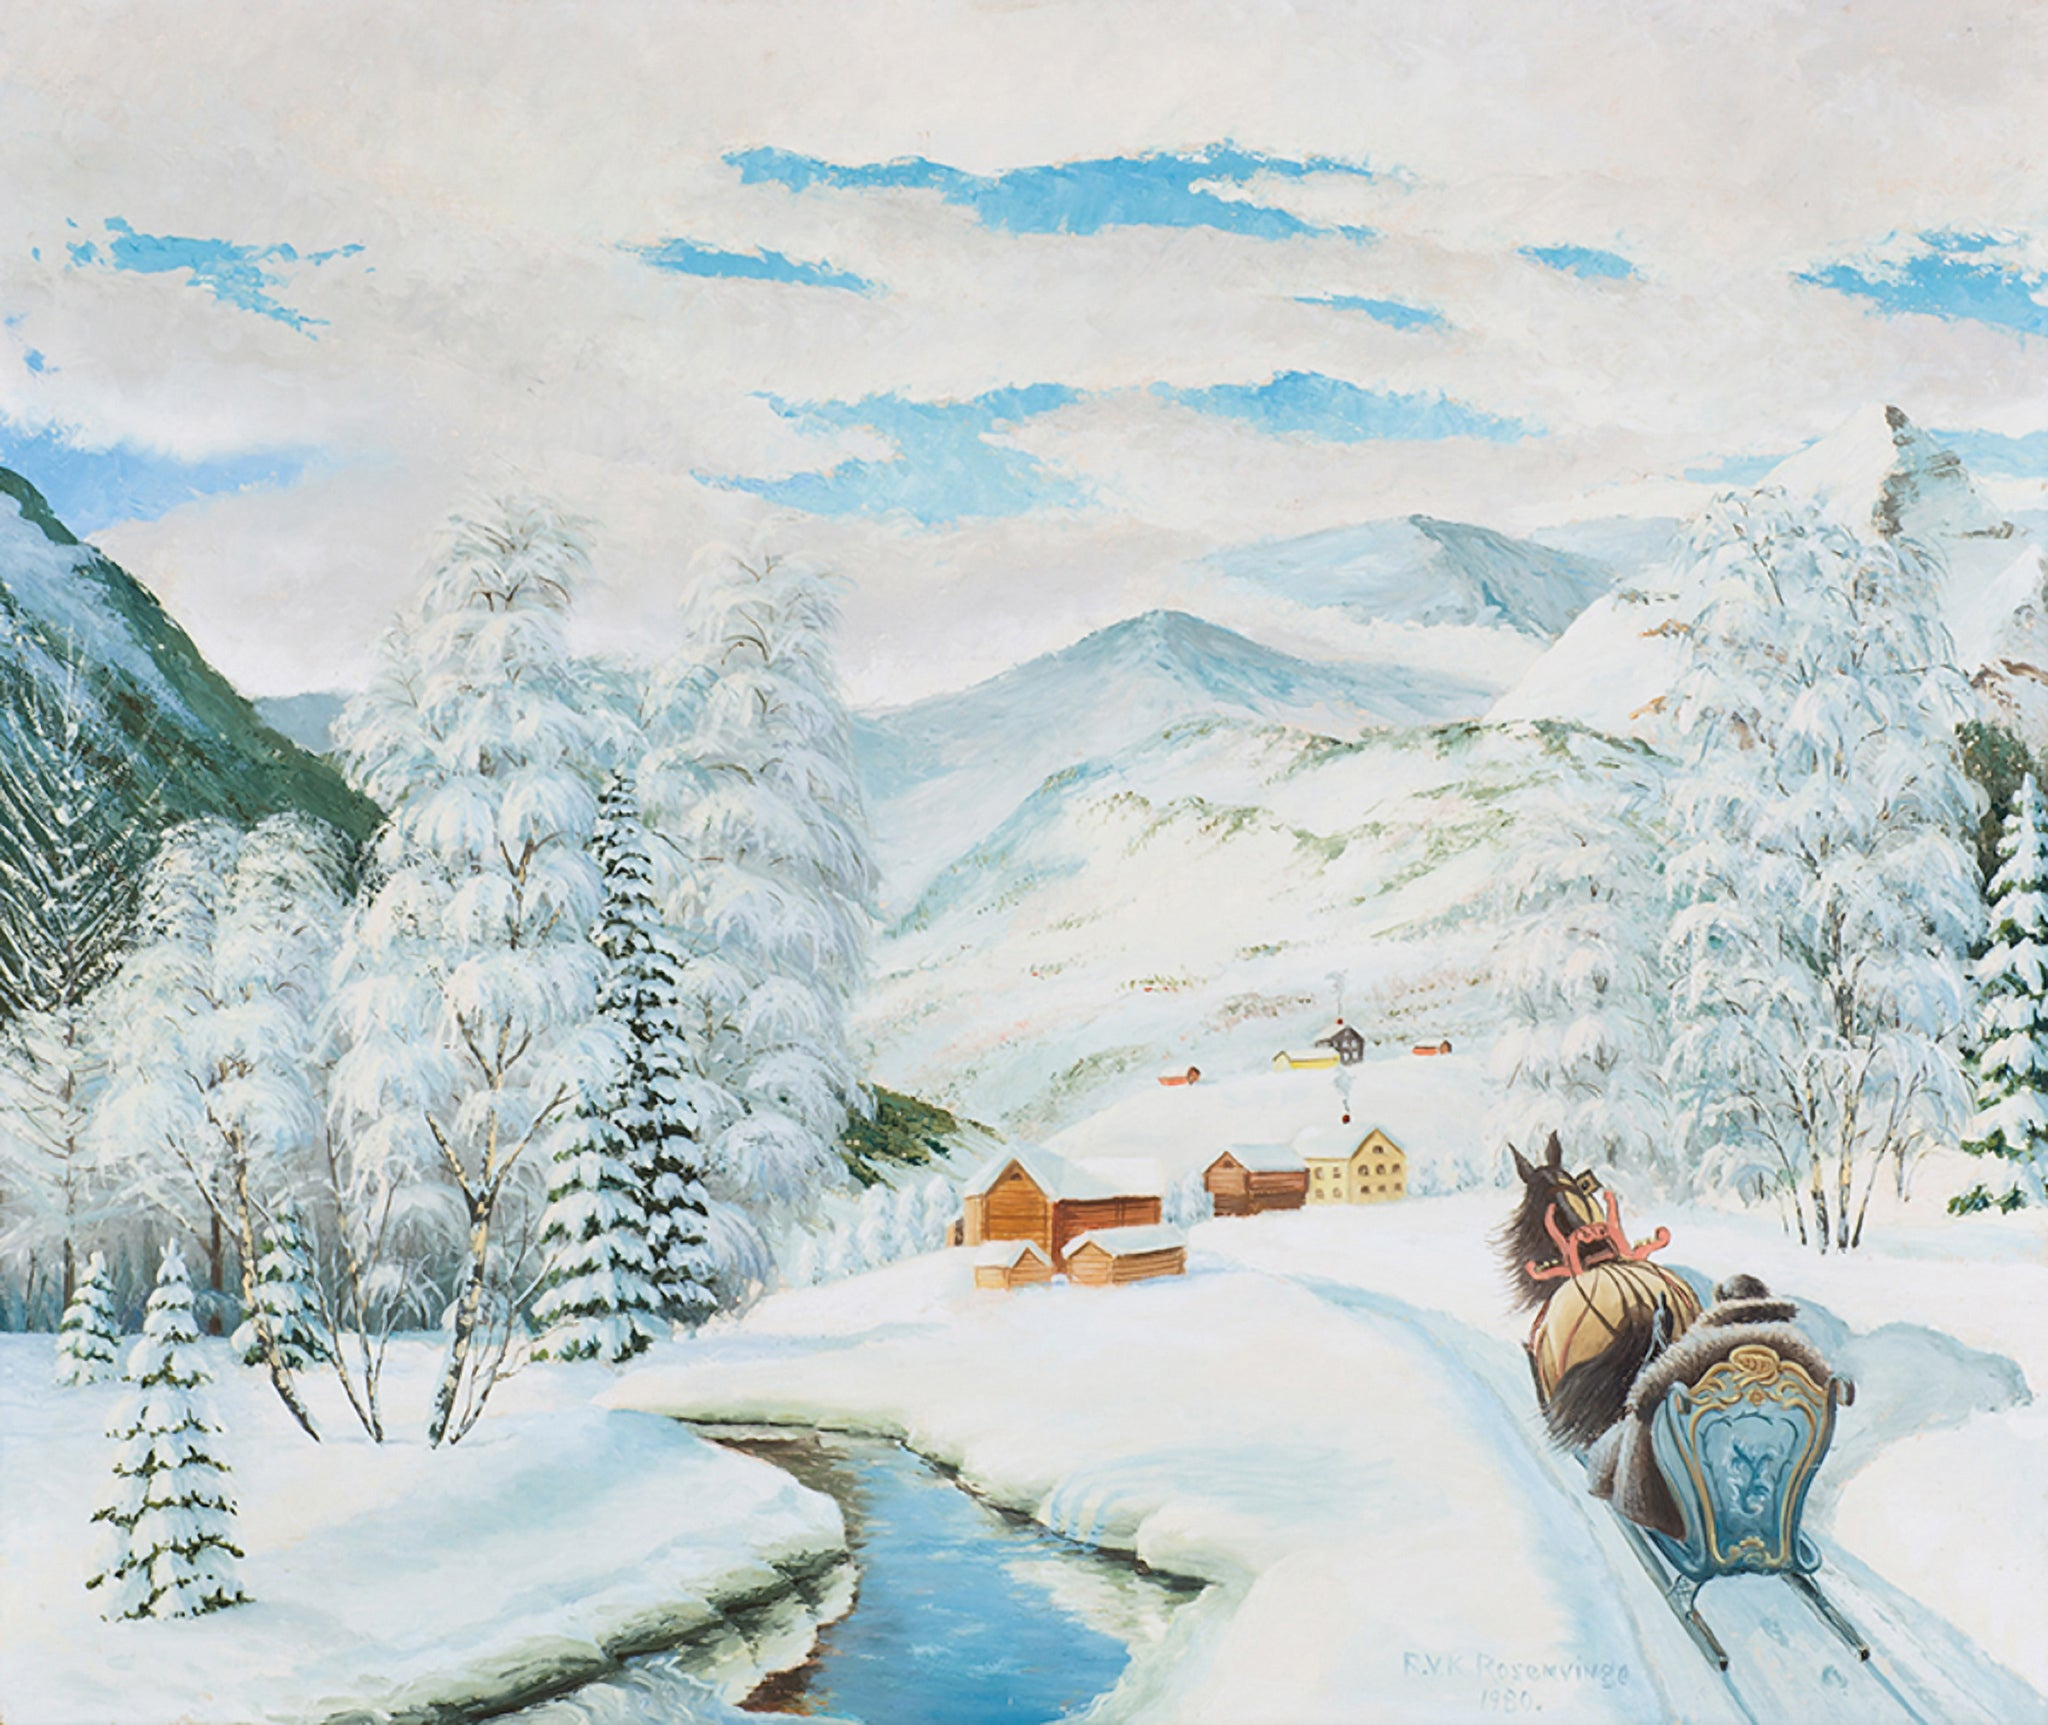 Giclée Print from Vesterheim's Collections - Winter Scene by Rosenvinge